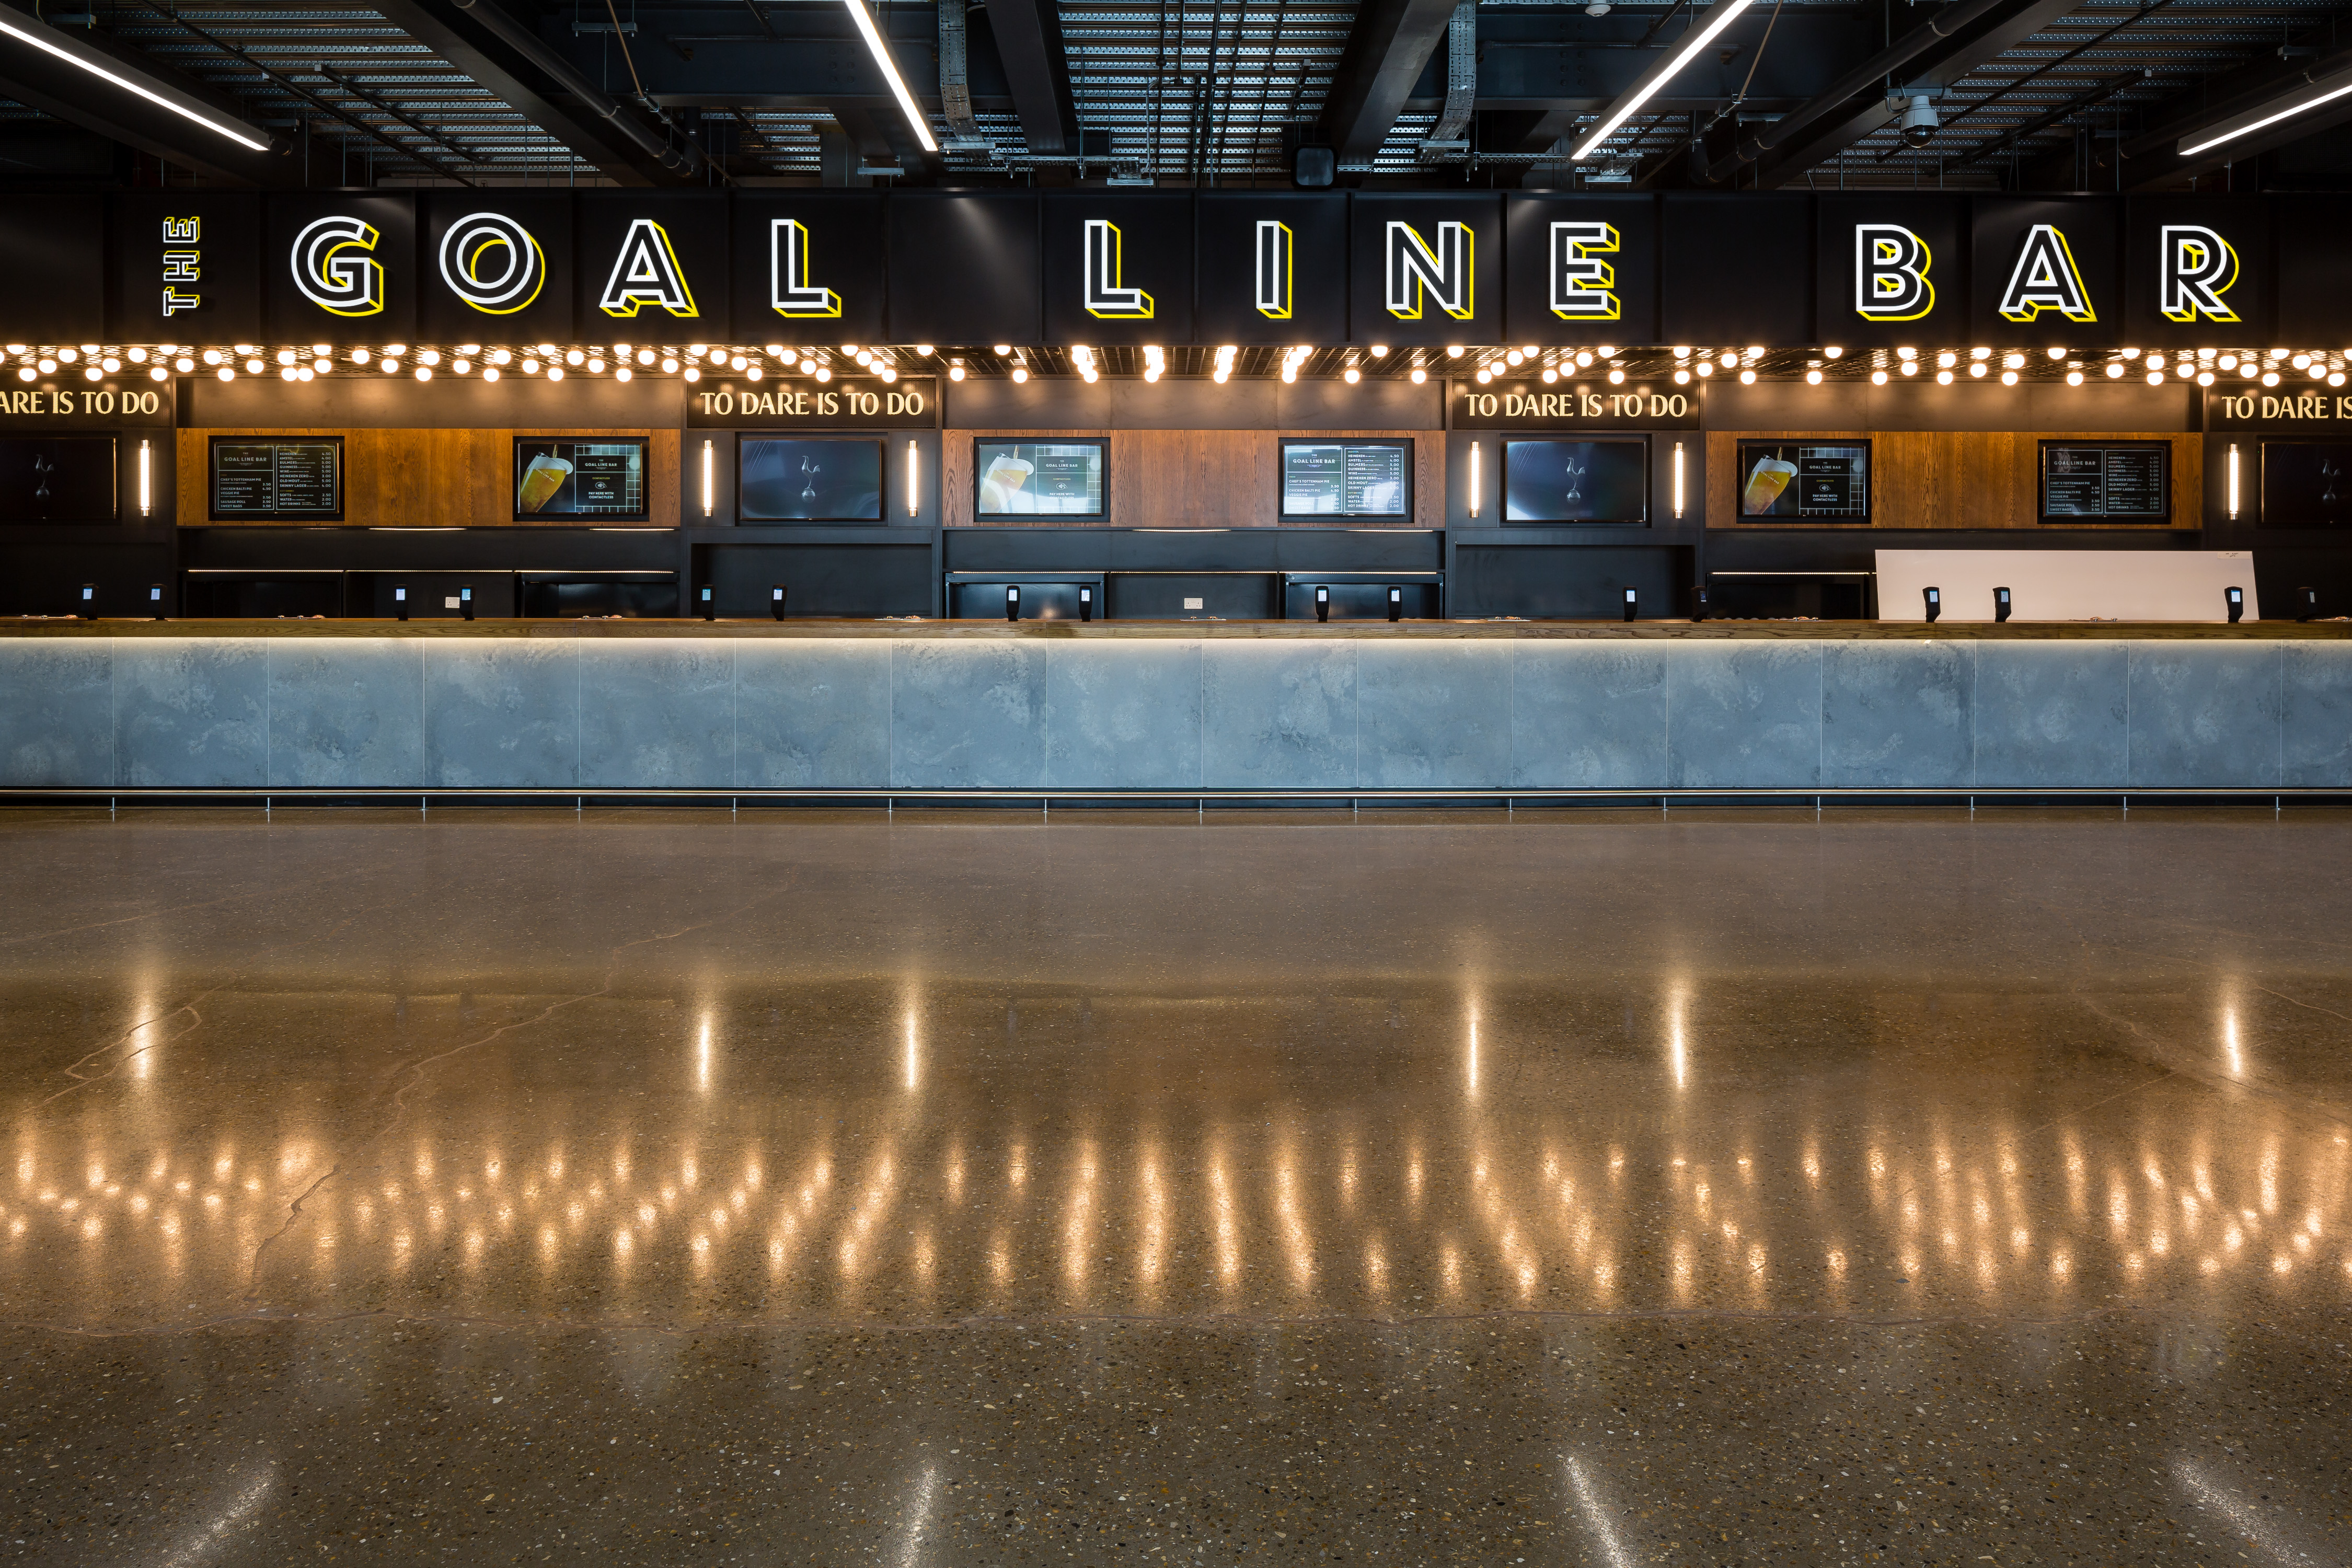 <p>A general view of the bar of the new Tottenham Hotspur Stadium  on March 5, 2019 in London, England. (Photo by Tottenham Hotspur FC/Tottenham Hotspur FC via Getty Images)</p>